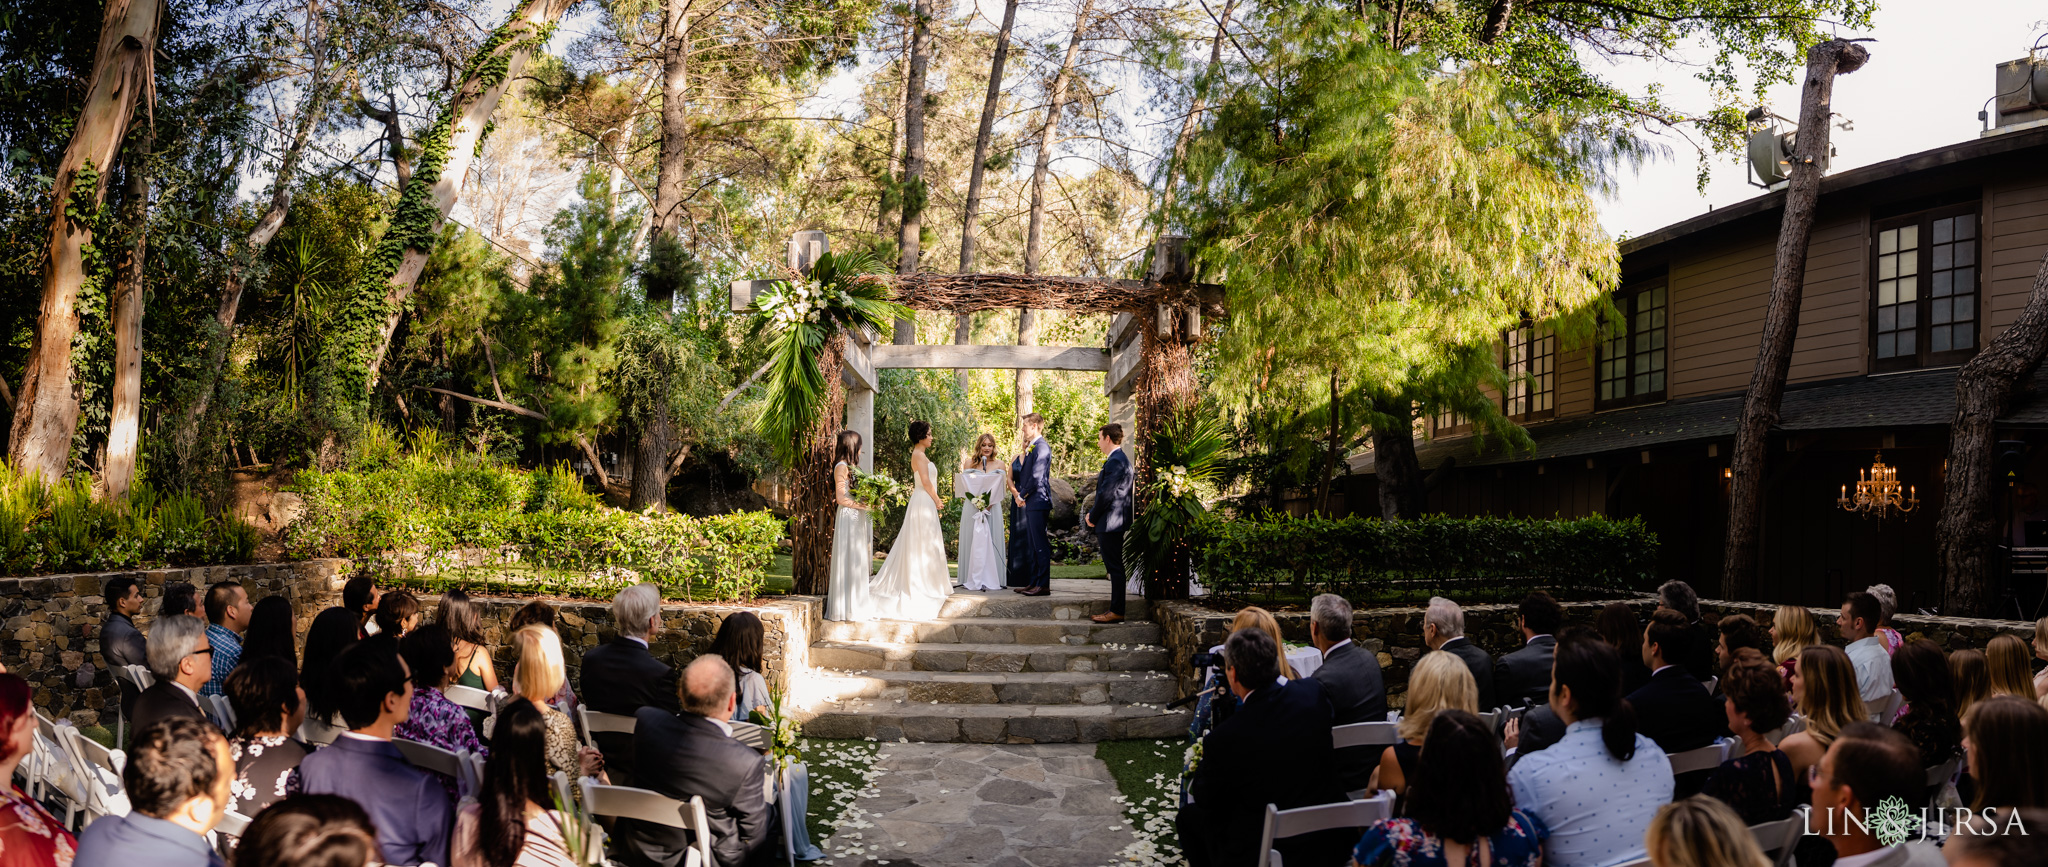 17 Calamigos Ranch Malibu California Wedding Photography